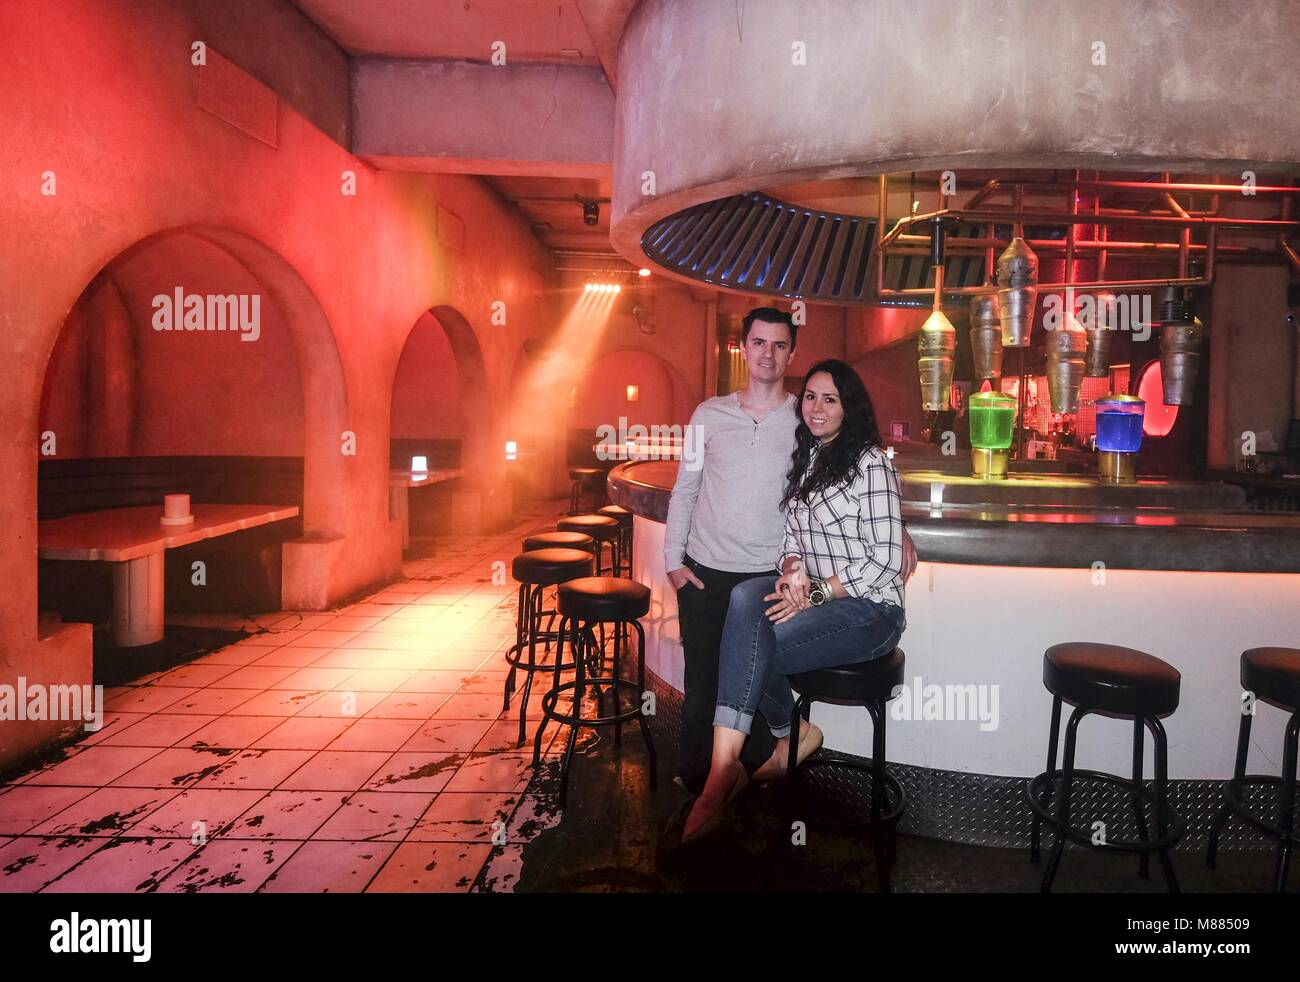 Los Angeles, California, USA. 6th Feb, 2018. J.C. Reifenberg and Jen Smith, owners/managers of Scum & Villainy in Stock Photo